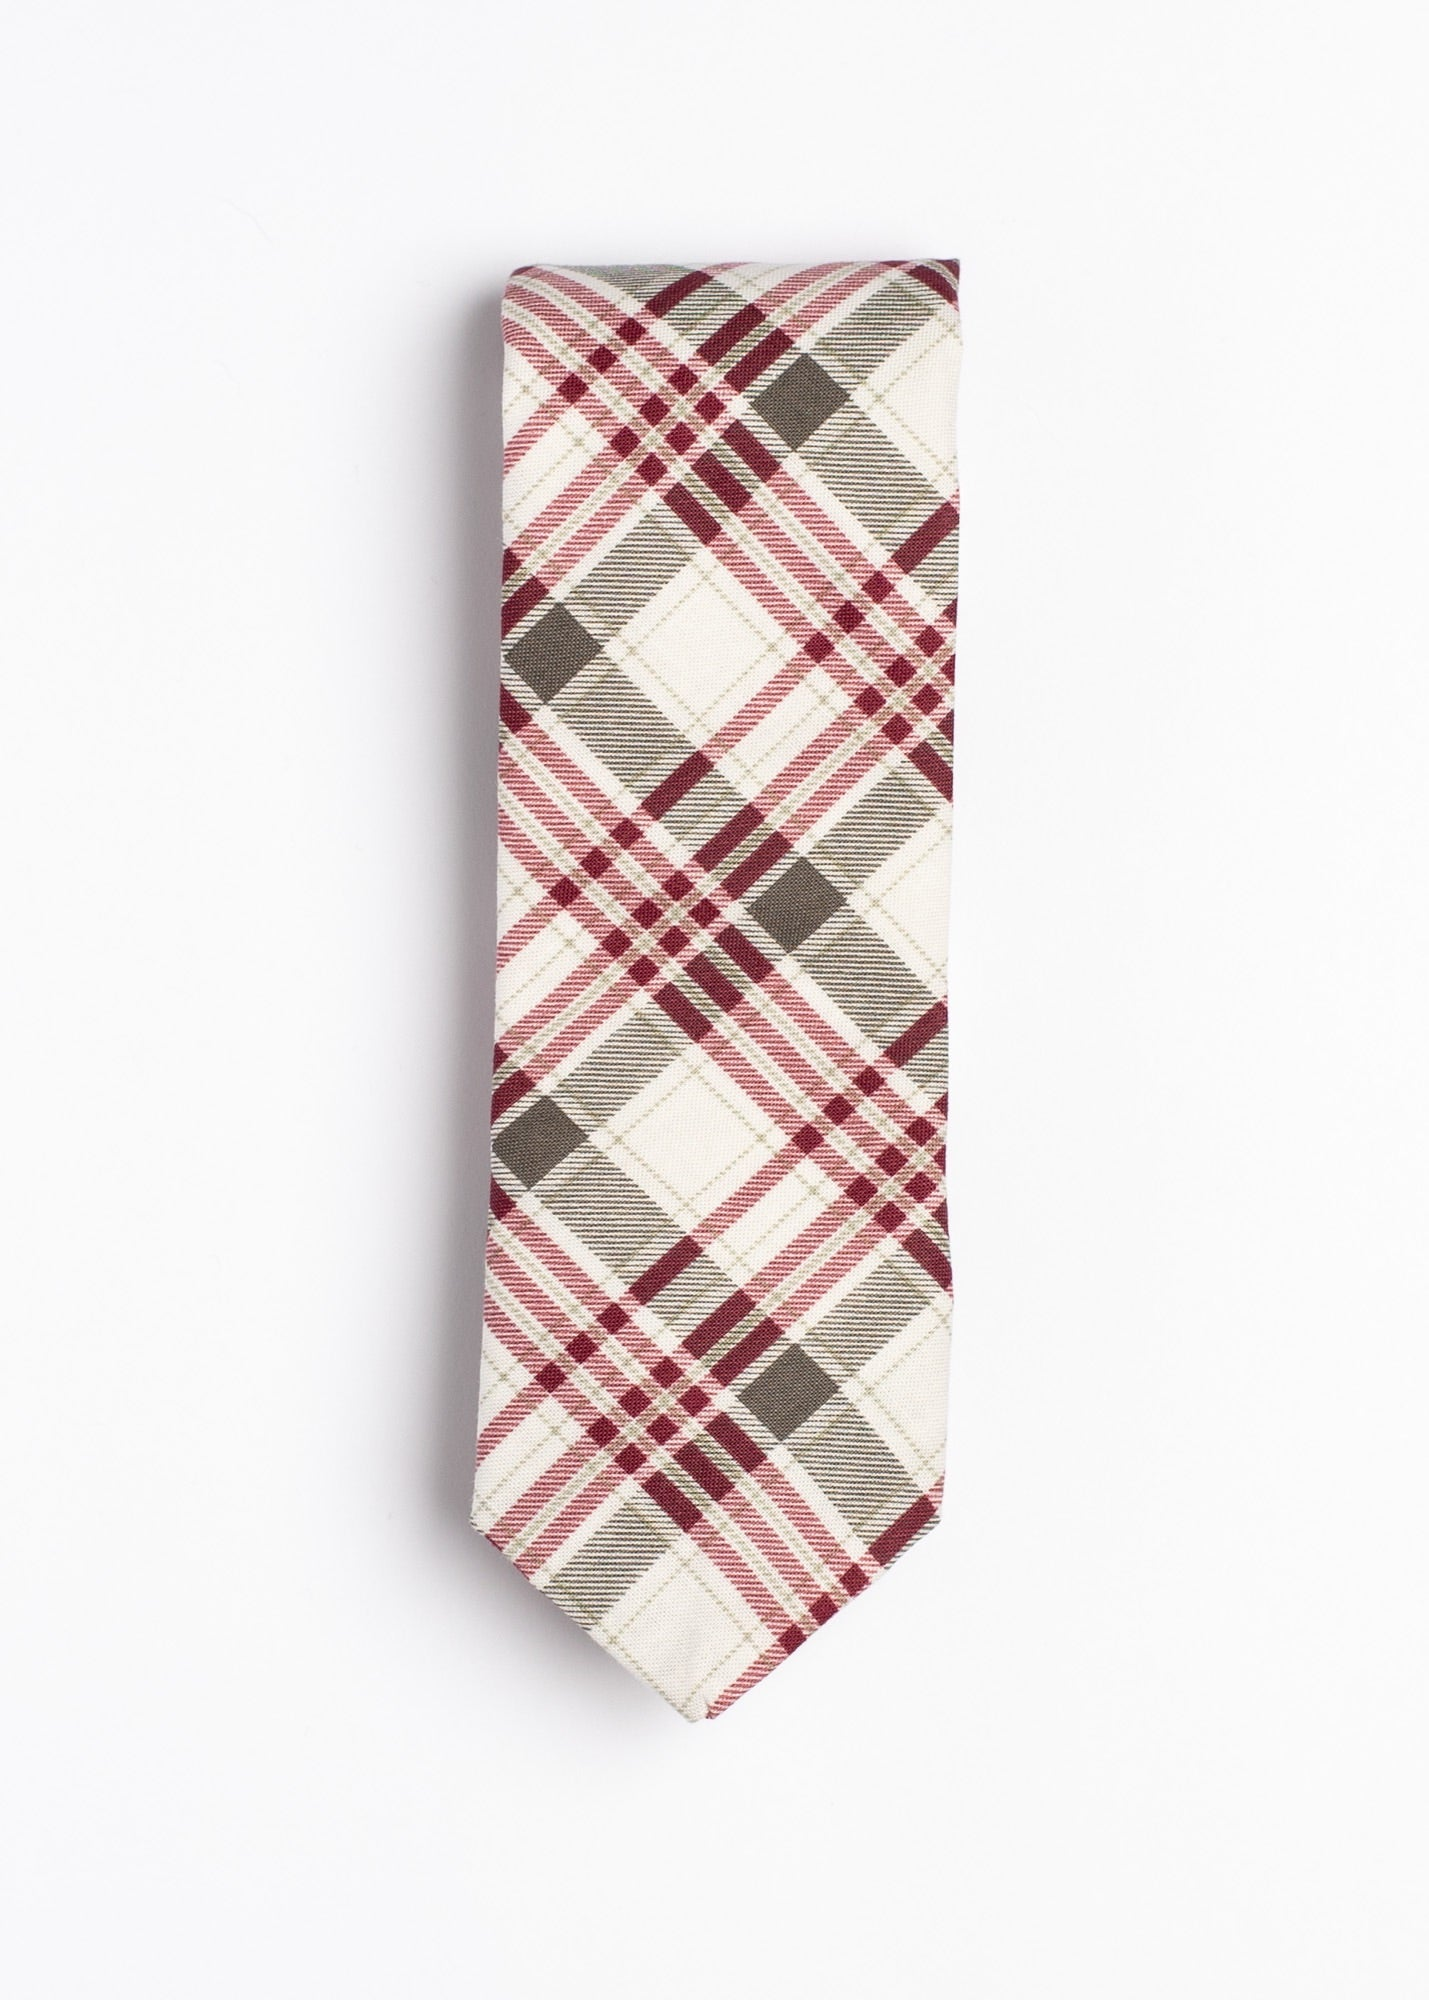 gray, red and white plaid pattern tie - Oxford Square